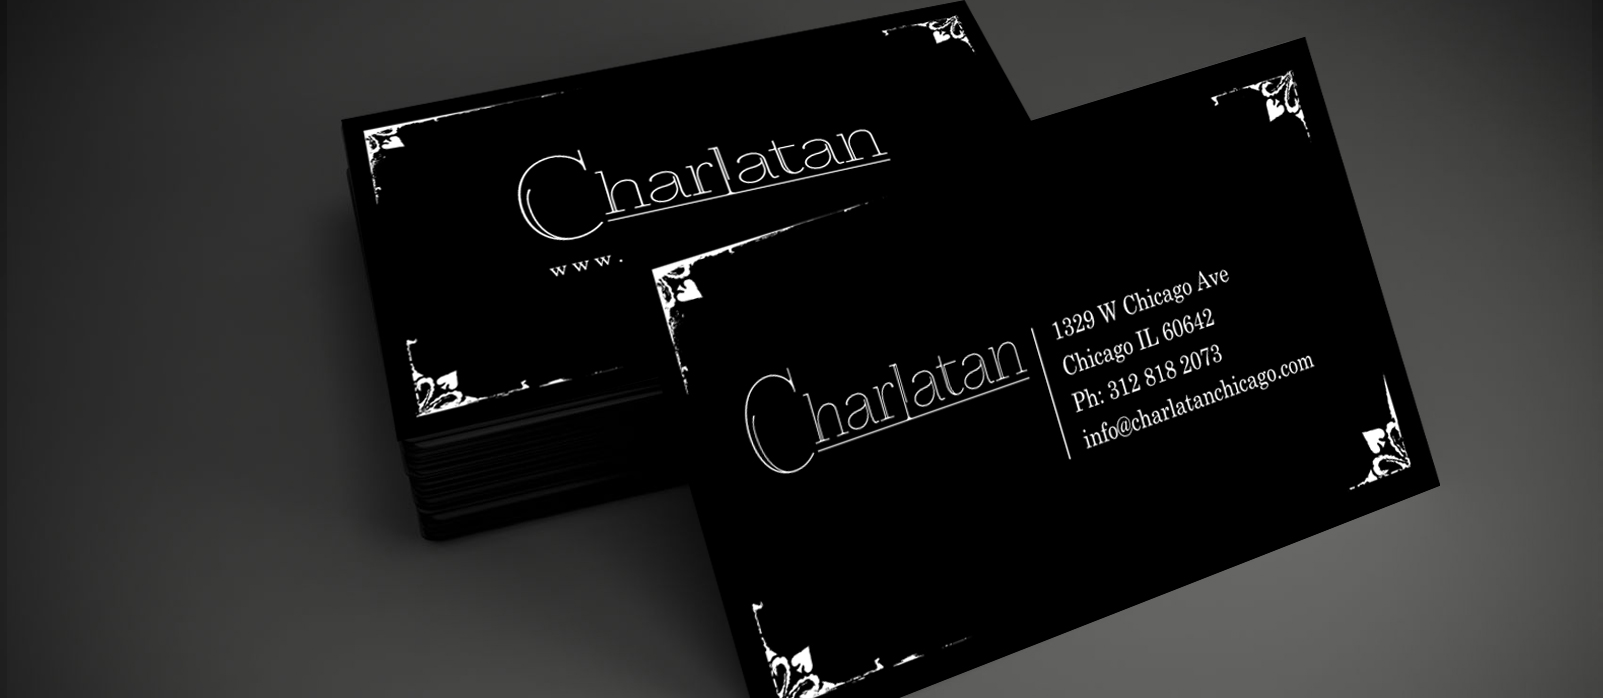 Charlatan Chicago, Business Card Design, Business Cards, Logo Design, Print Production